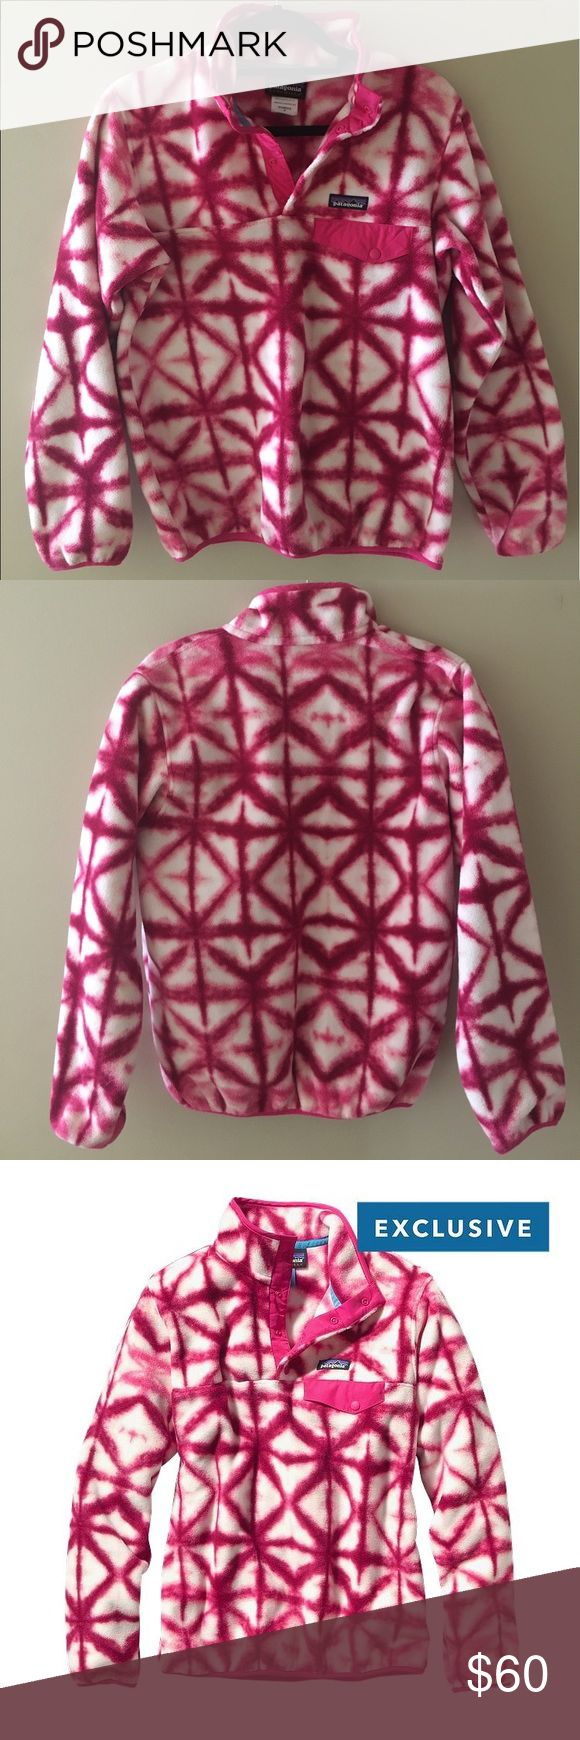 Patagonia Synchilla Snap-T Tie-Dye Fleece Pullover Patagonia Synchilla Tie-Dye Fleece Pullover with snap pocket. Women's small. Only worn a few times but in great condition and looks brand new! Patagonia Jackets & Coats